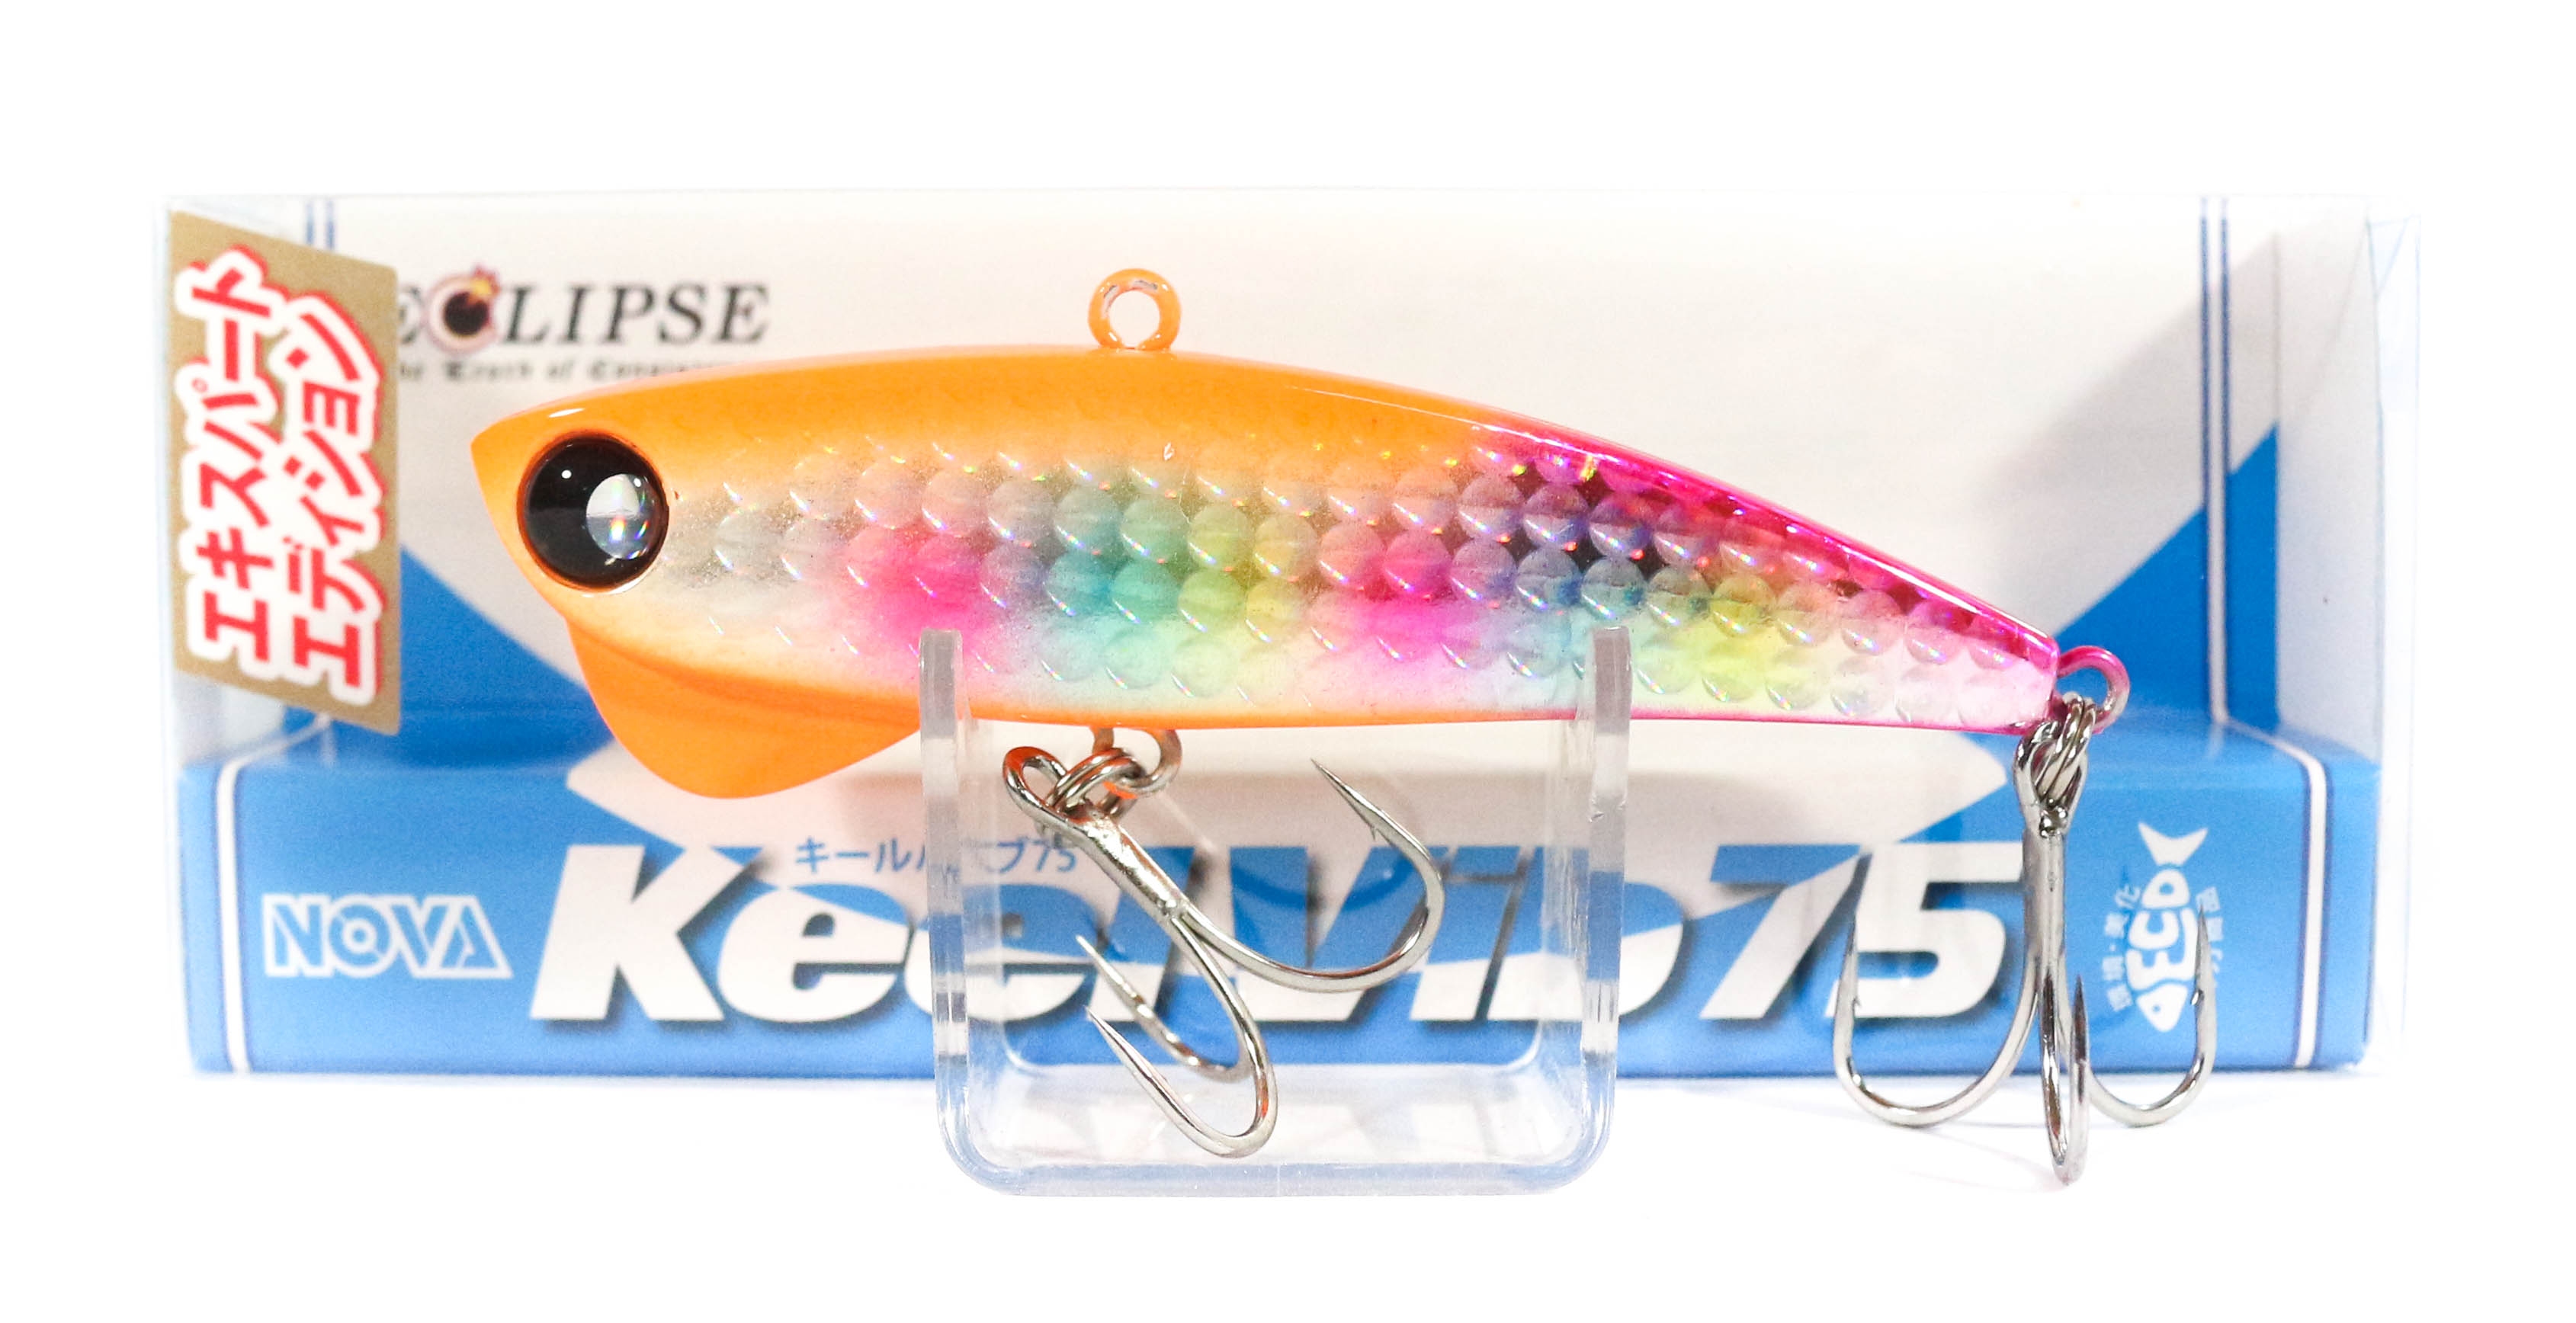 Sale Eclipse Keel Vib 75 Sinking Lure 151 (7239)